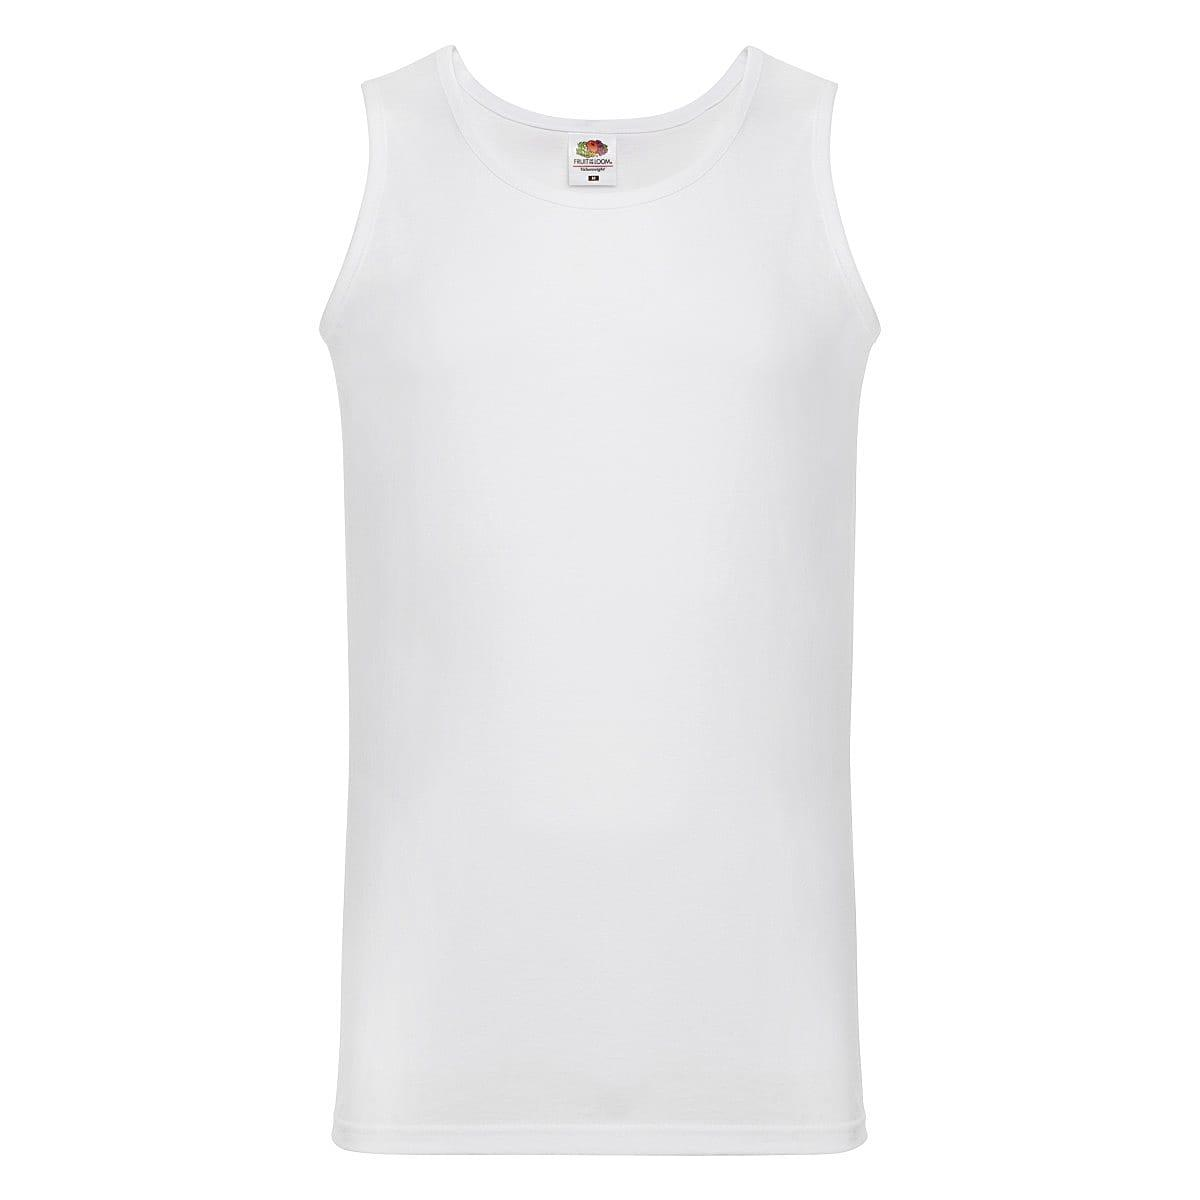 Fruit Of The Loom Athletic Vest in White (Product Code: 61098)